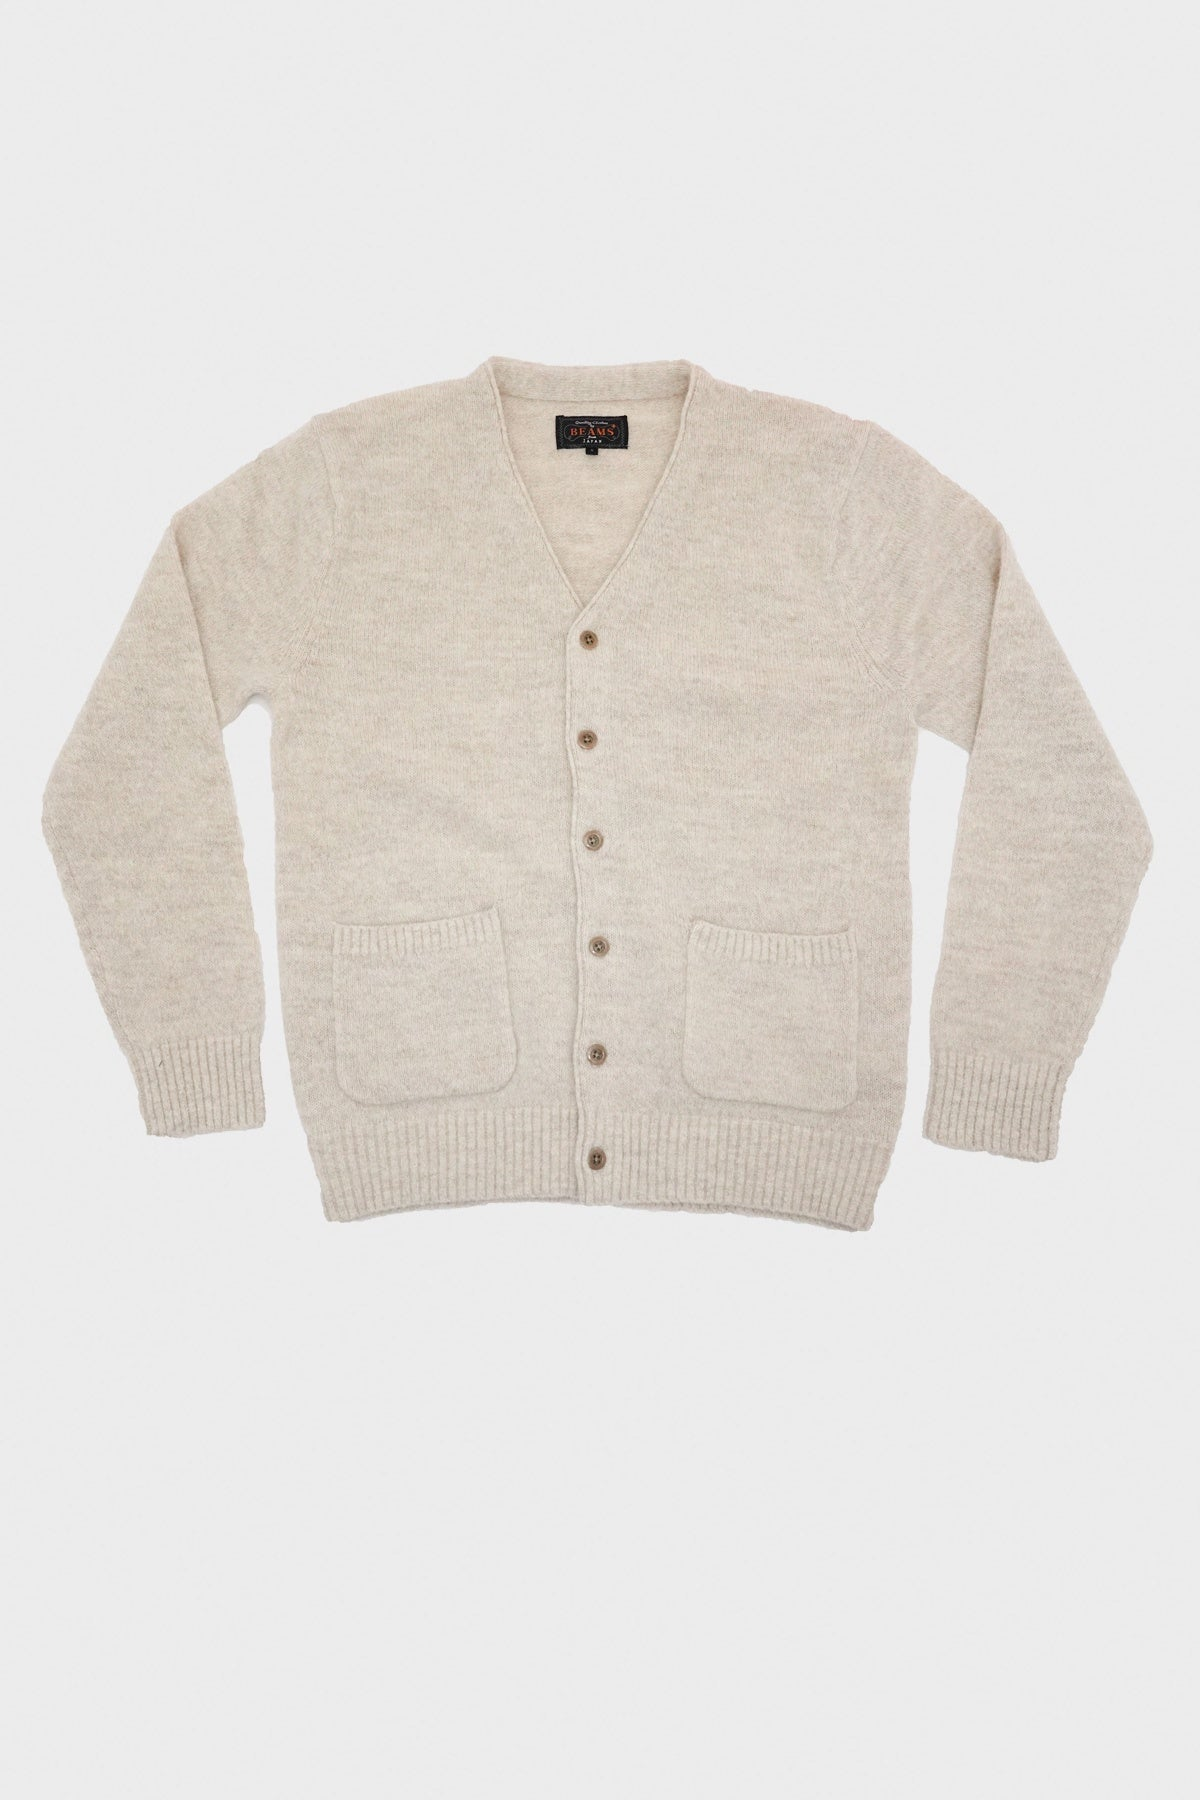 beams plus Alpaca Cardigan - Off-White